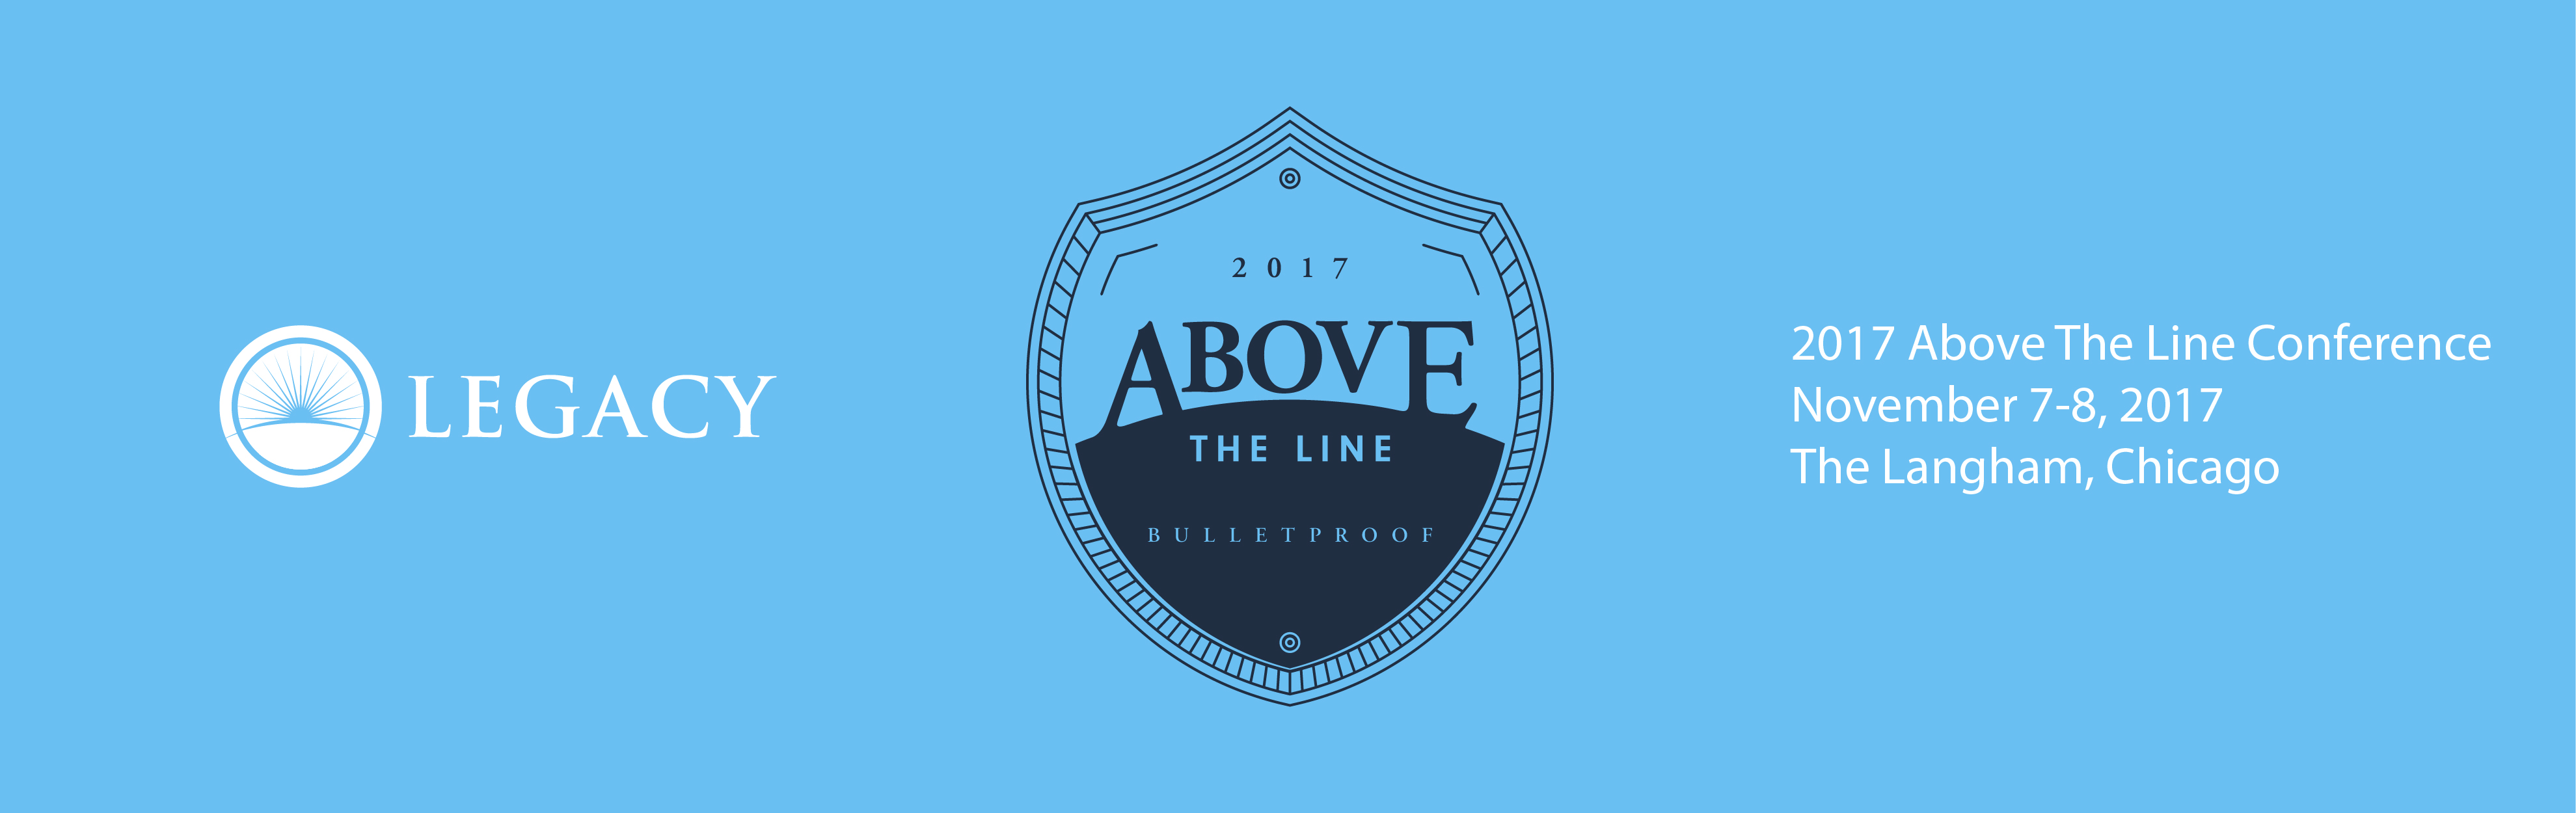 Above the Line Conference: 2017